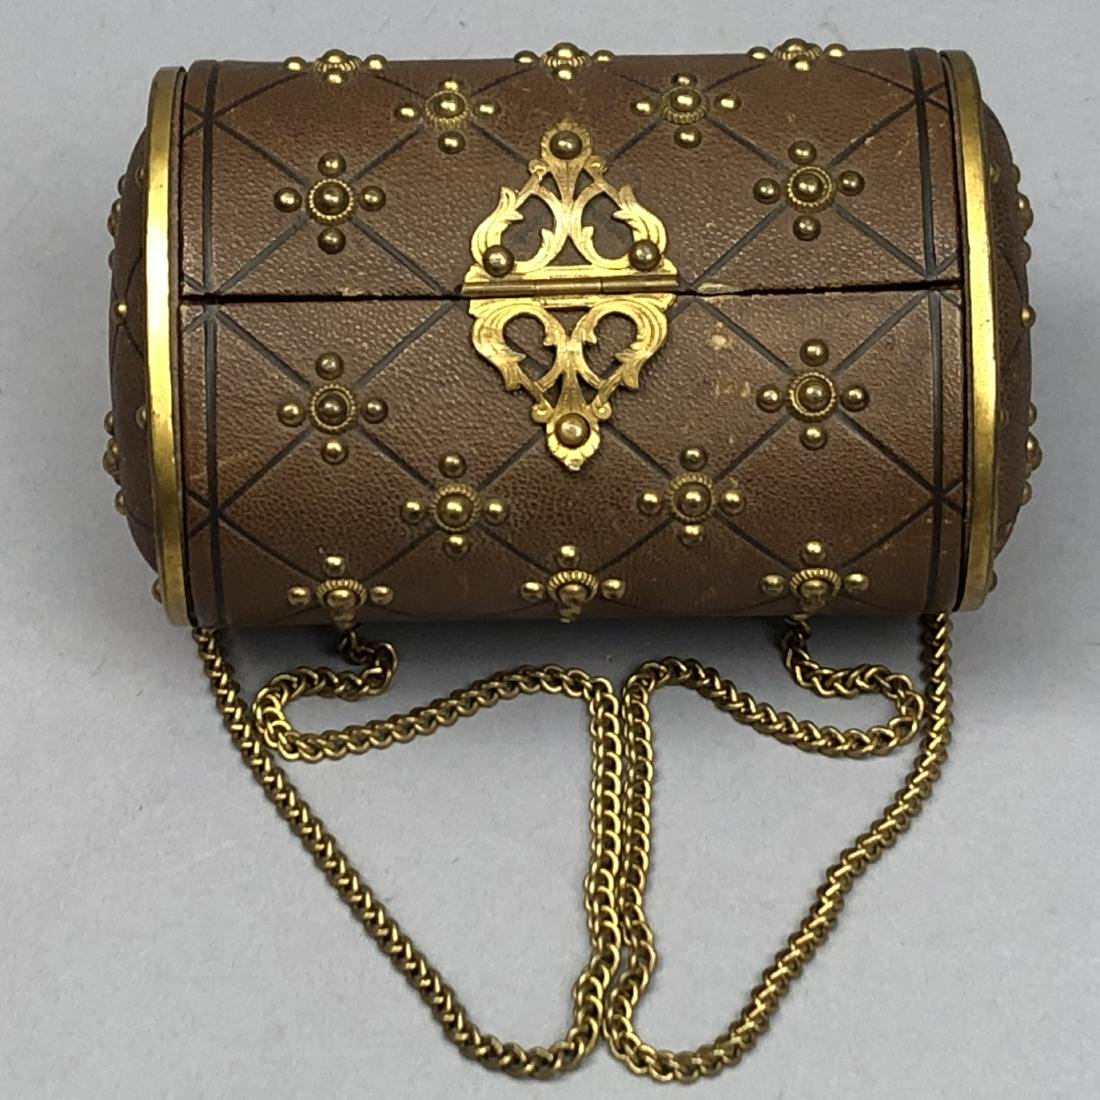 HINGED-LID LEATHER SEWING CASE, 1850 - 1870